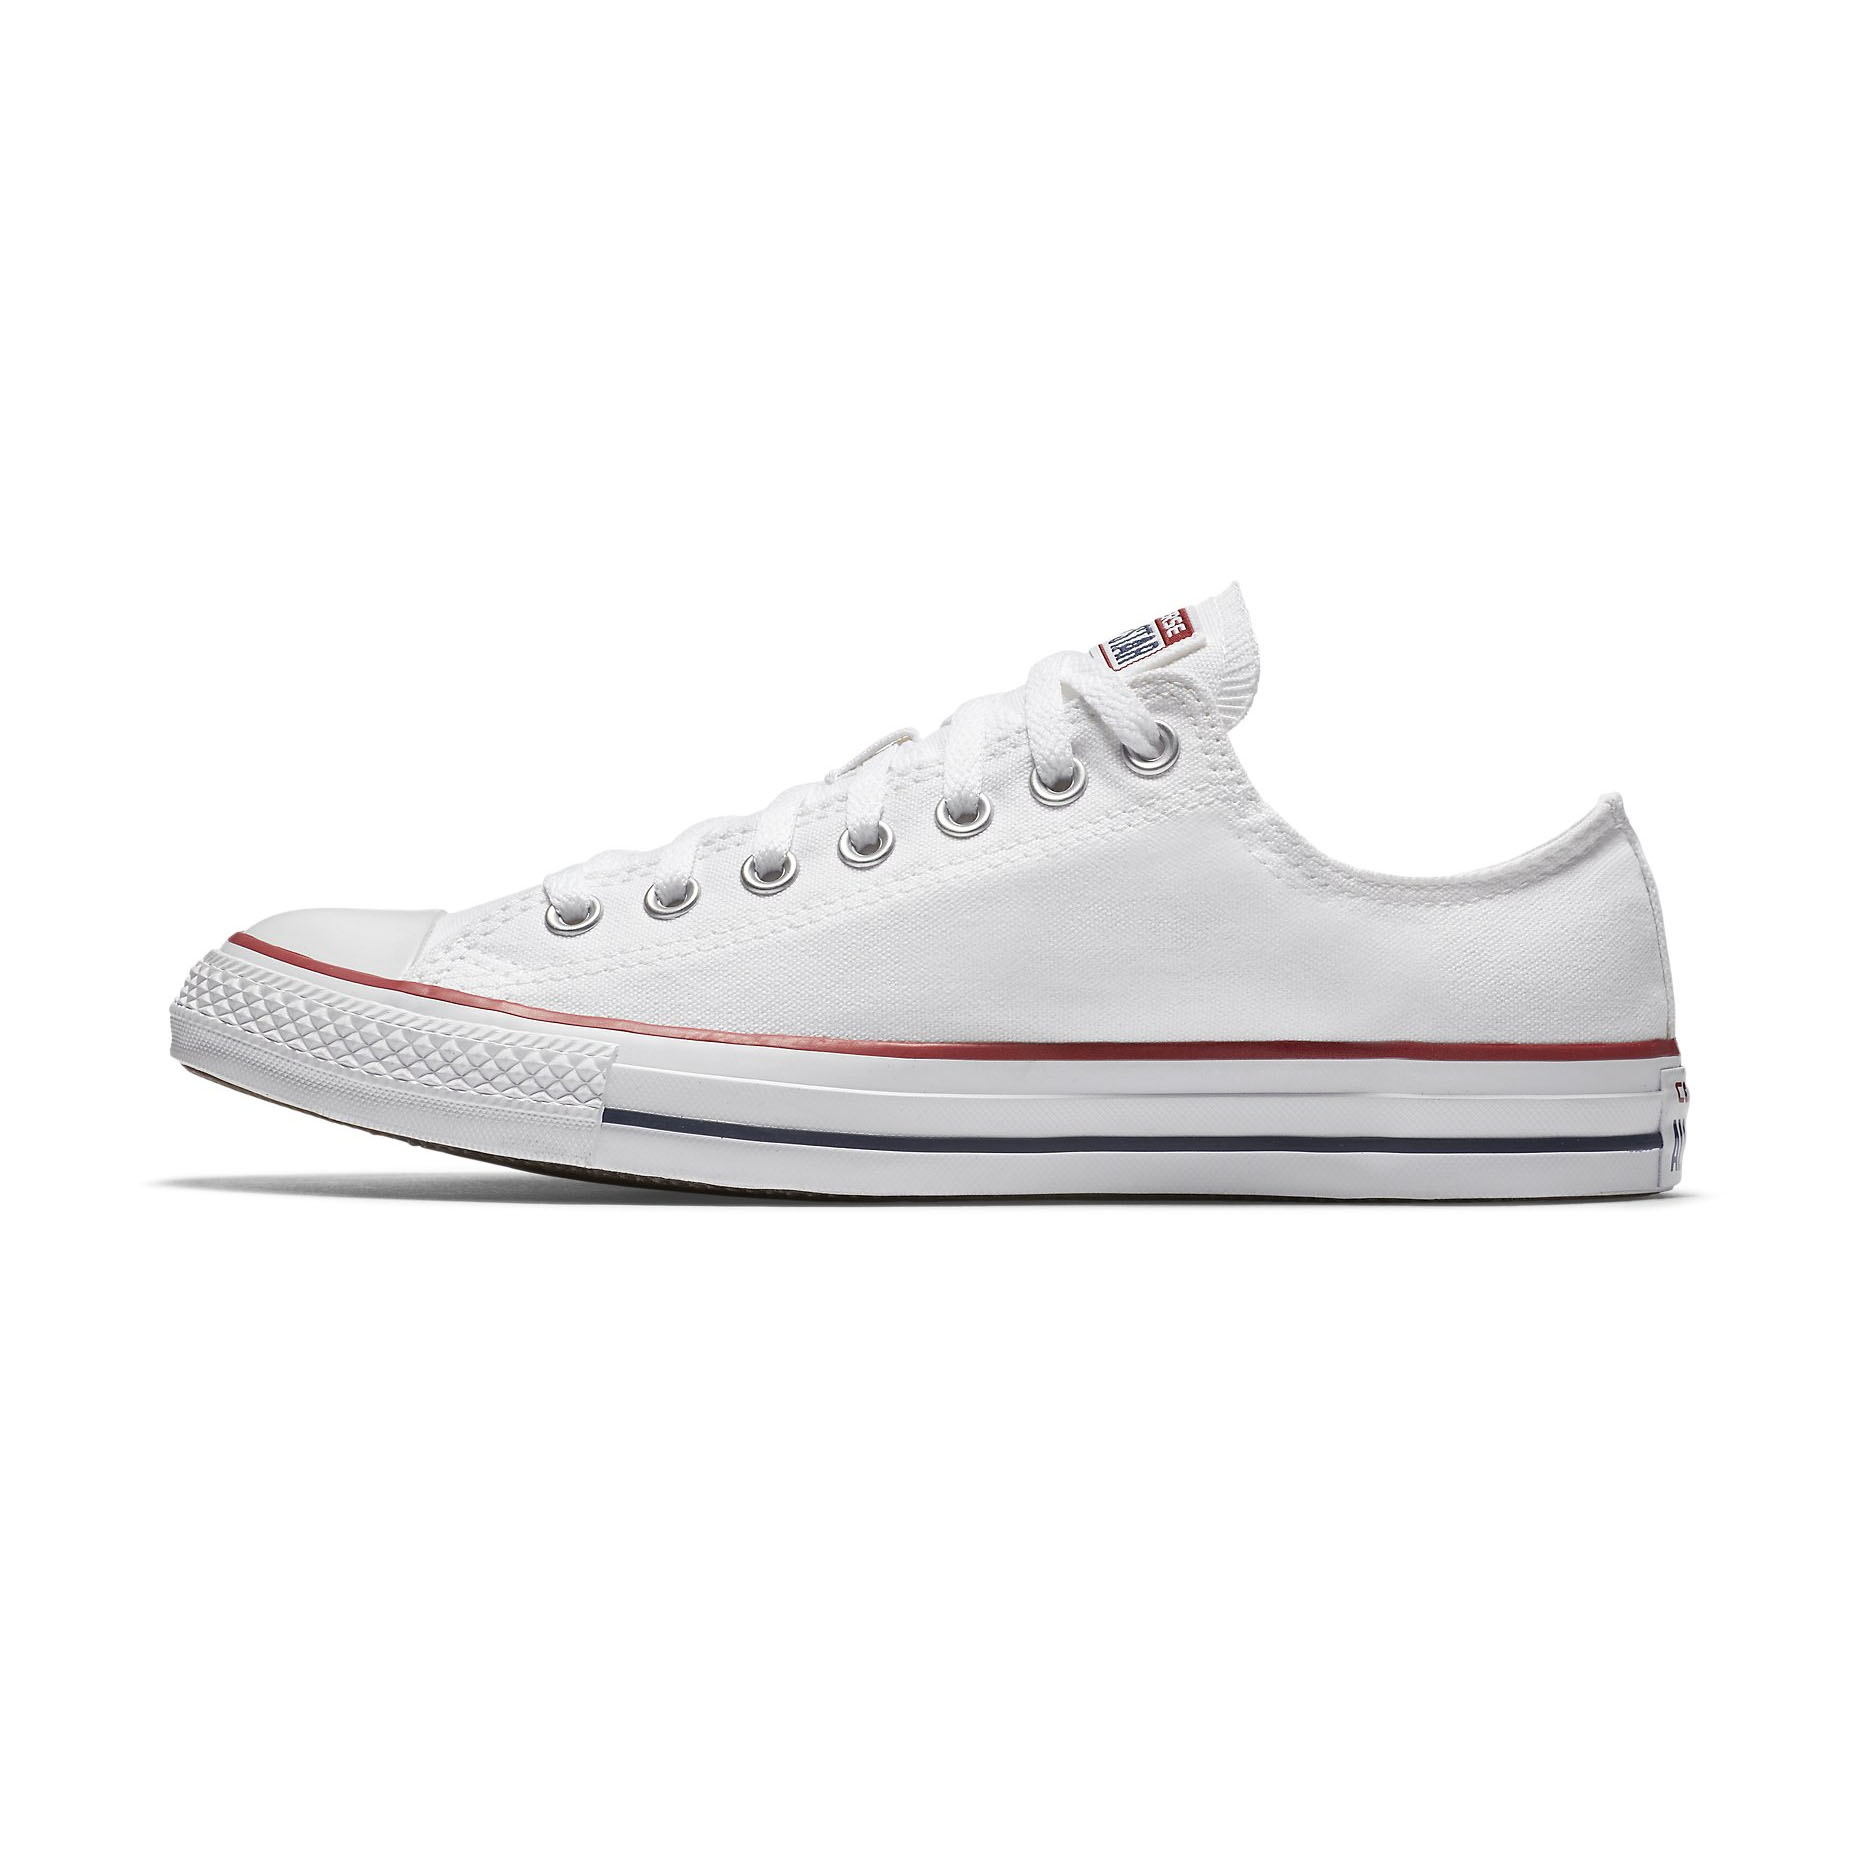 converse chuck taylor low top